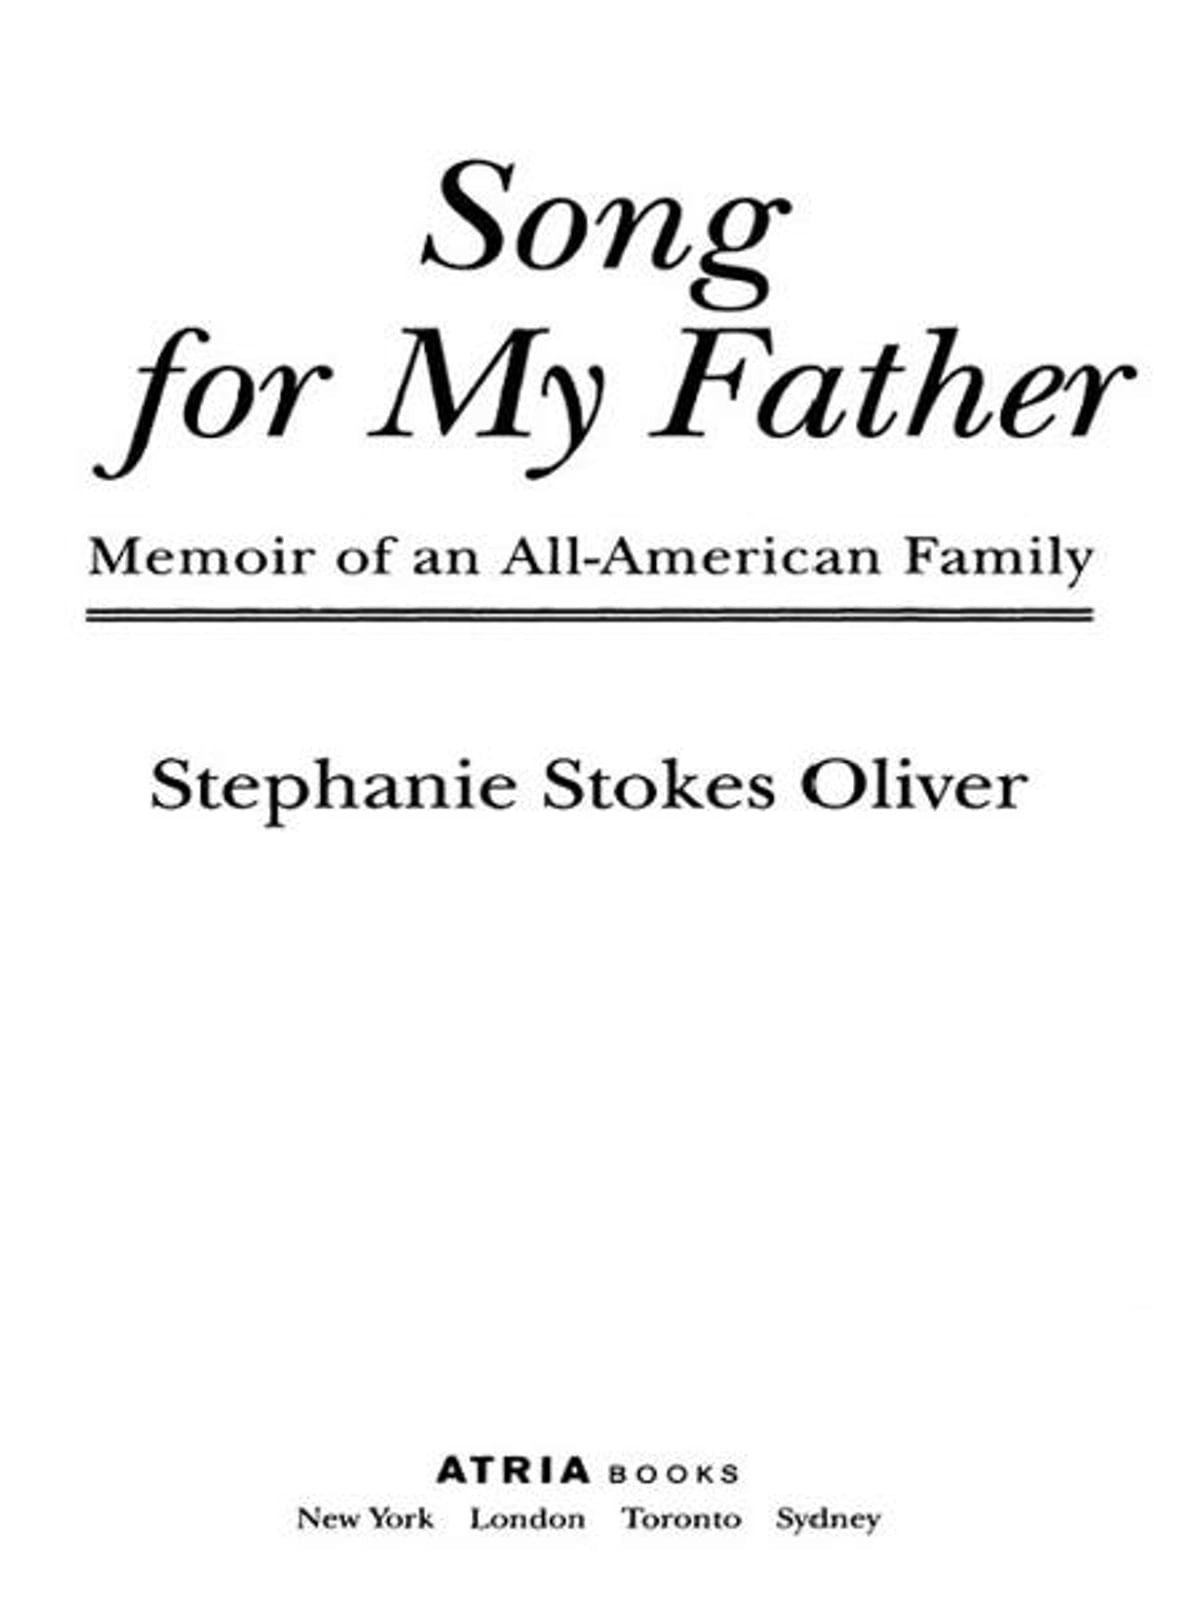 Song for my father ebook by stephanie stokes oliver song for my father ebook by stephanie stokes oliver 9781416521570 rakuten kobo fandeluxe PDF